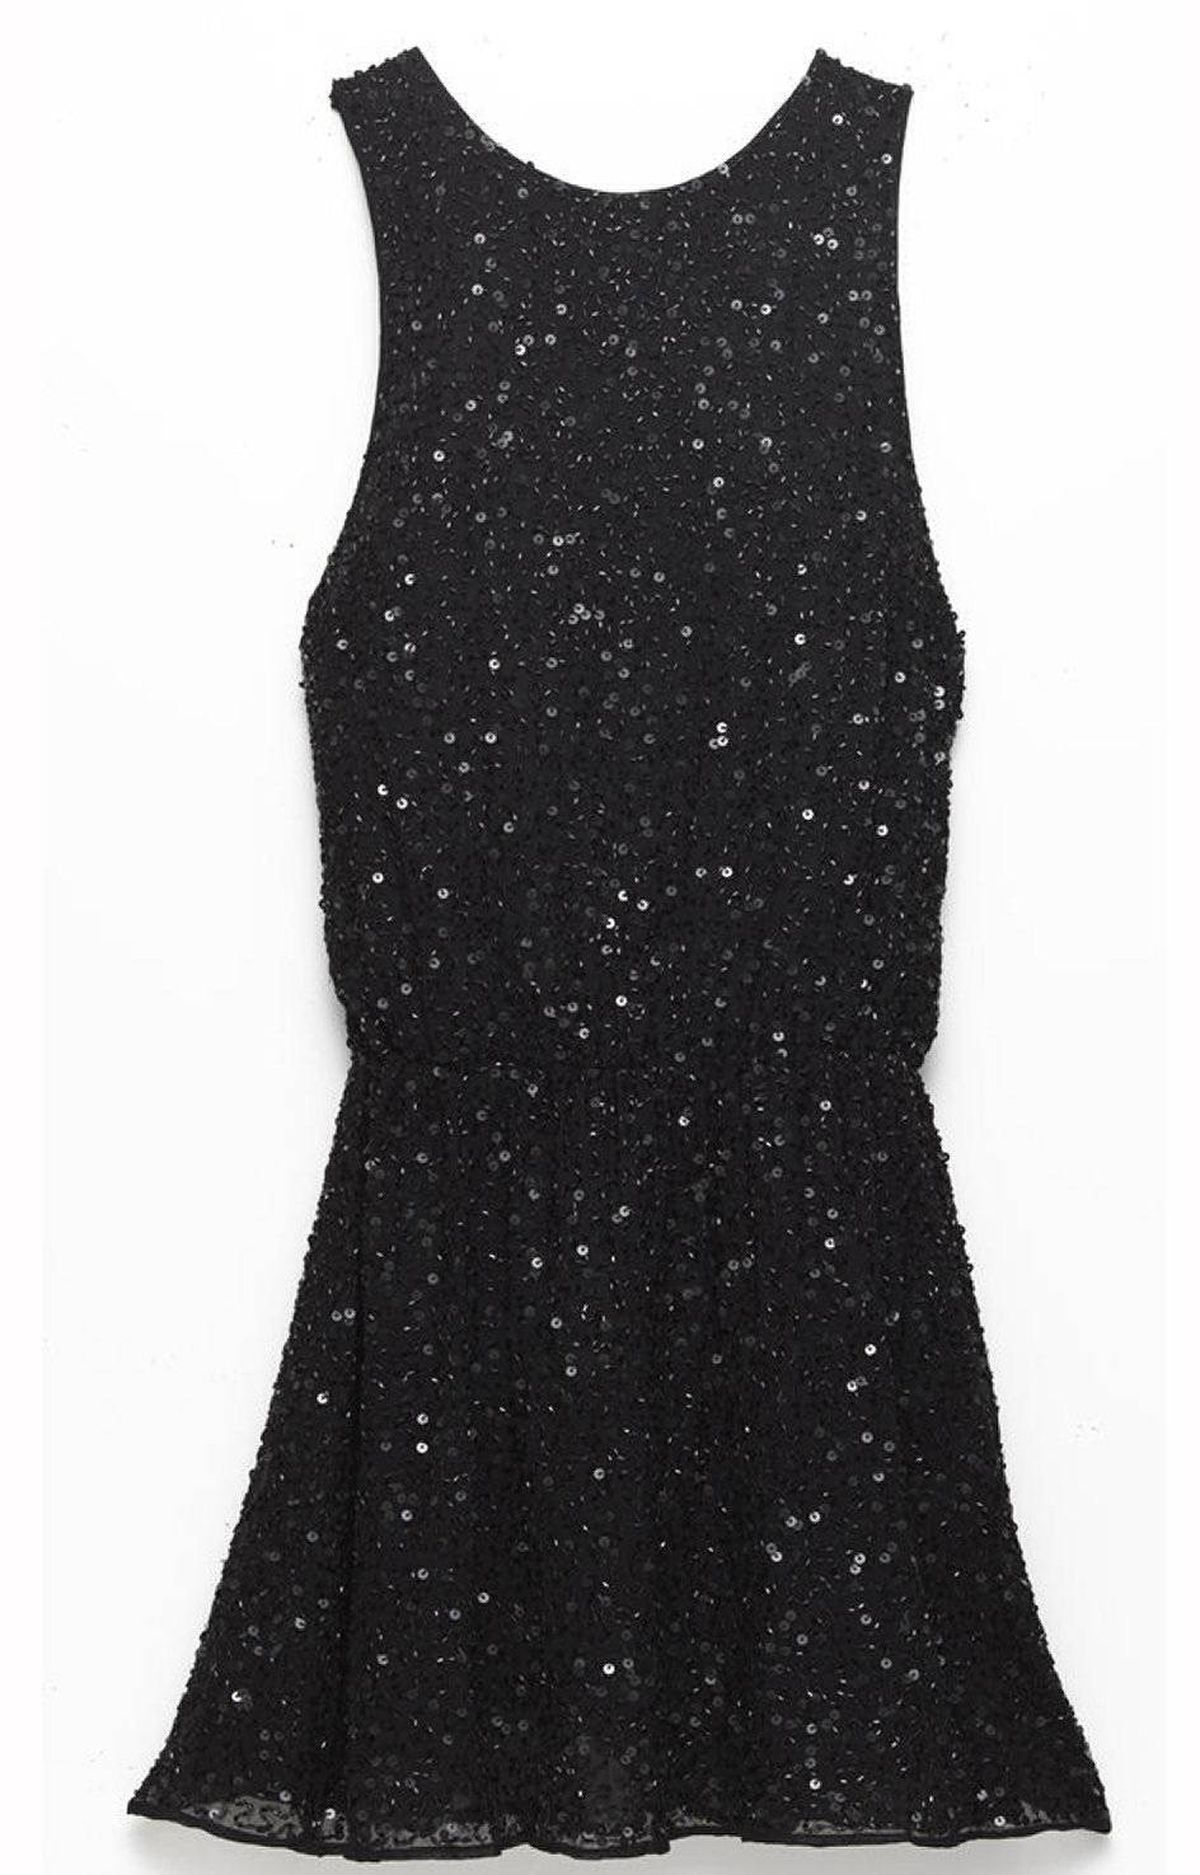 Sequin dropped-waist dress by Alice + Olivia, $575 at The Bay (www.thebay.com)